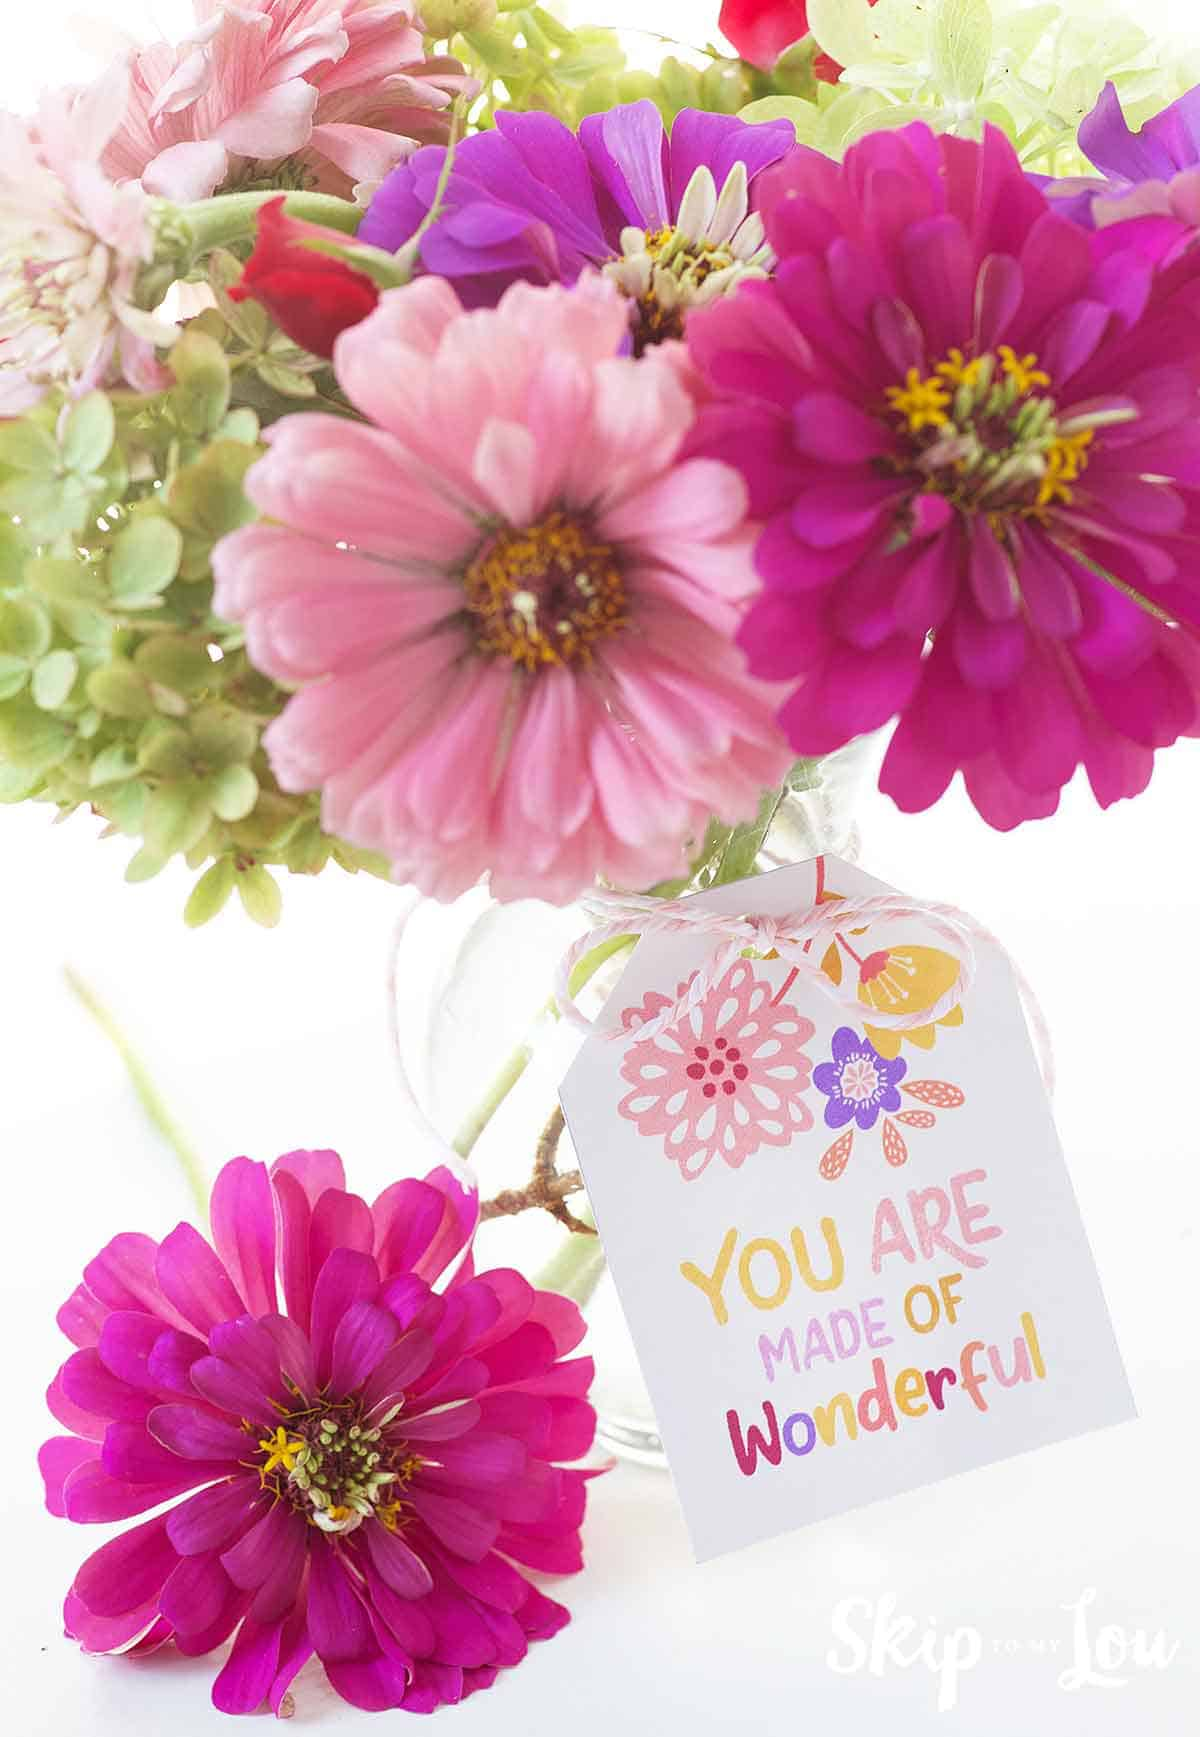 flowers in vase with you are made of wonderful gift tag tied to the vase one flower laying to the side